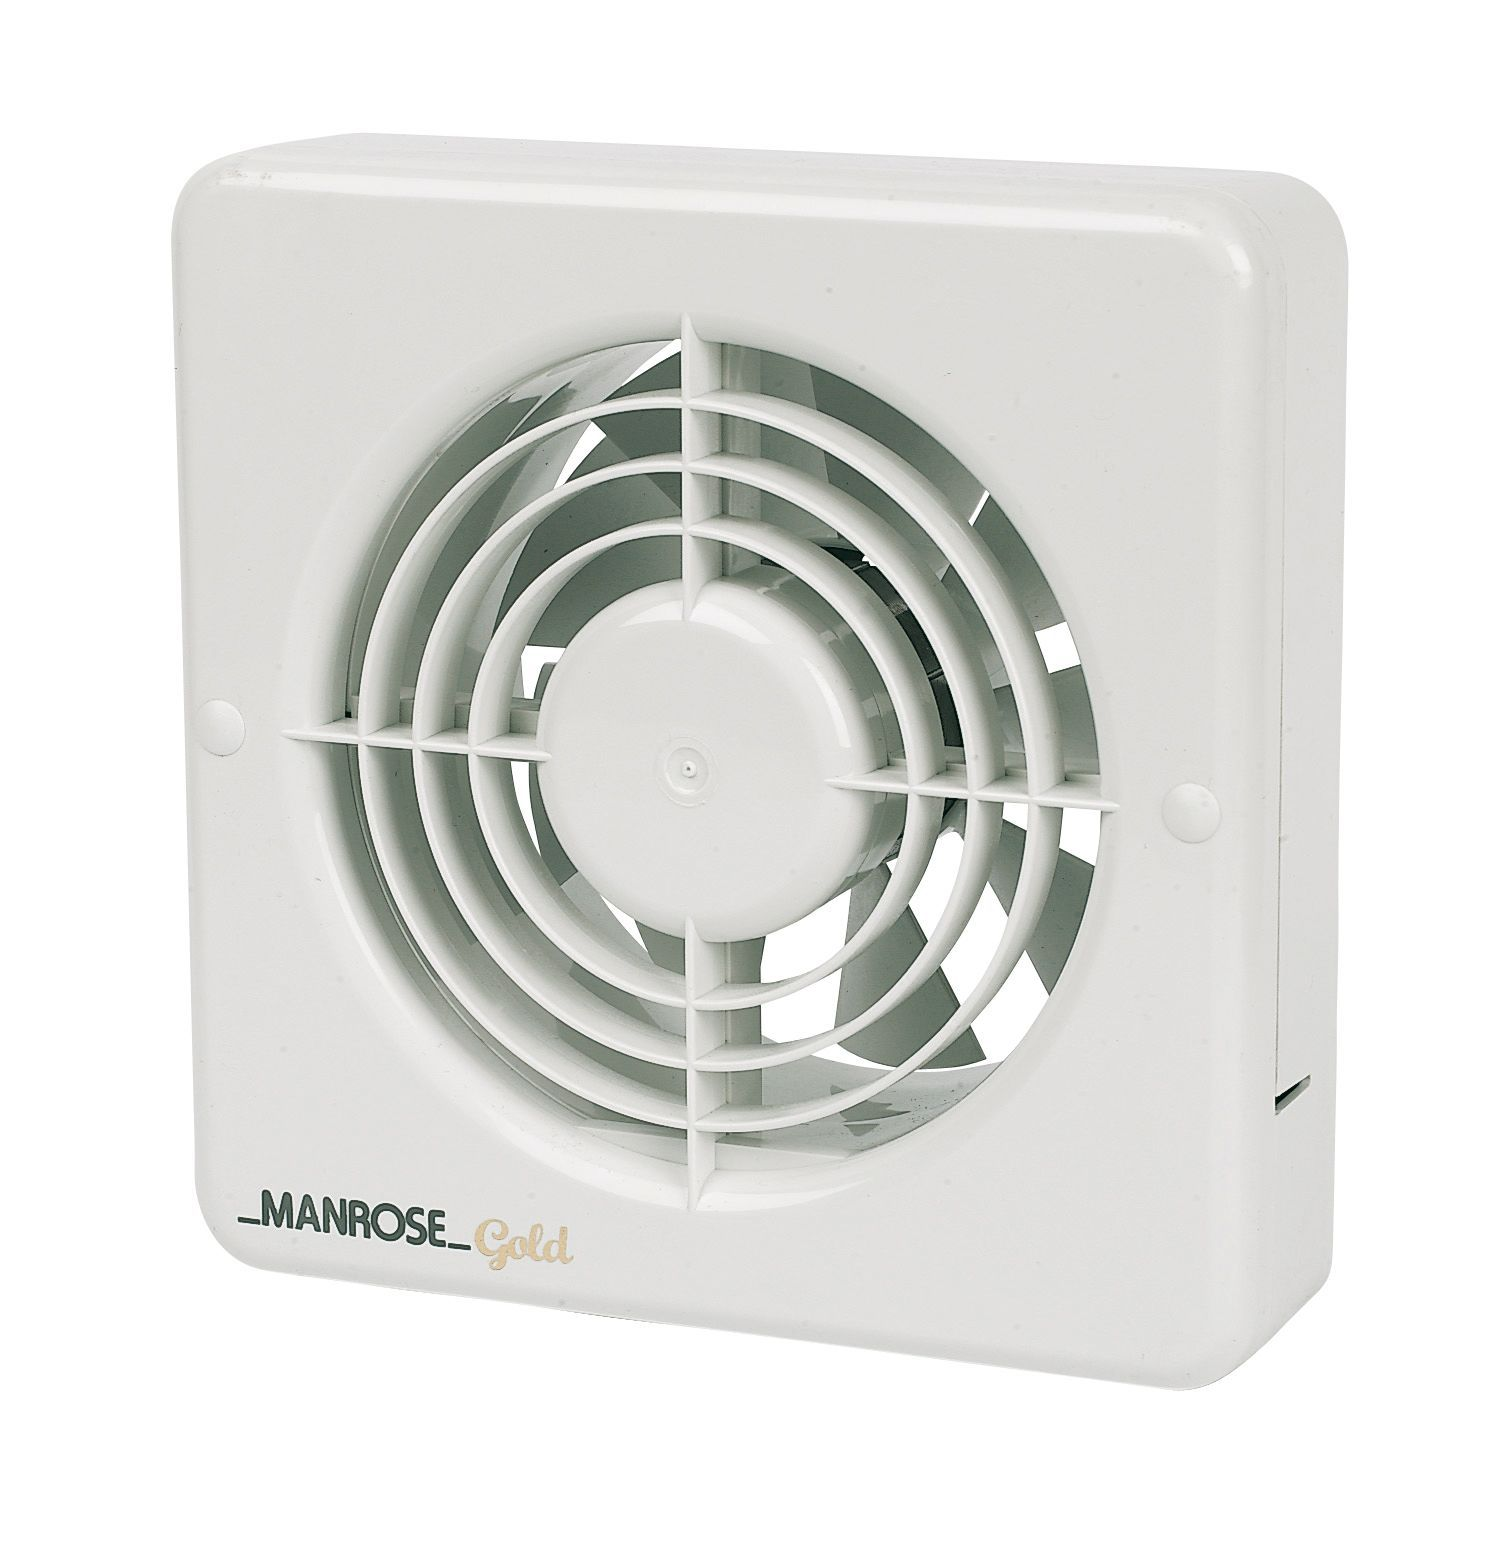 Bathroom extractor fans advice - Manrose 22693 Bathroom Extractor Fan D 149mm Departments Diy At B Q